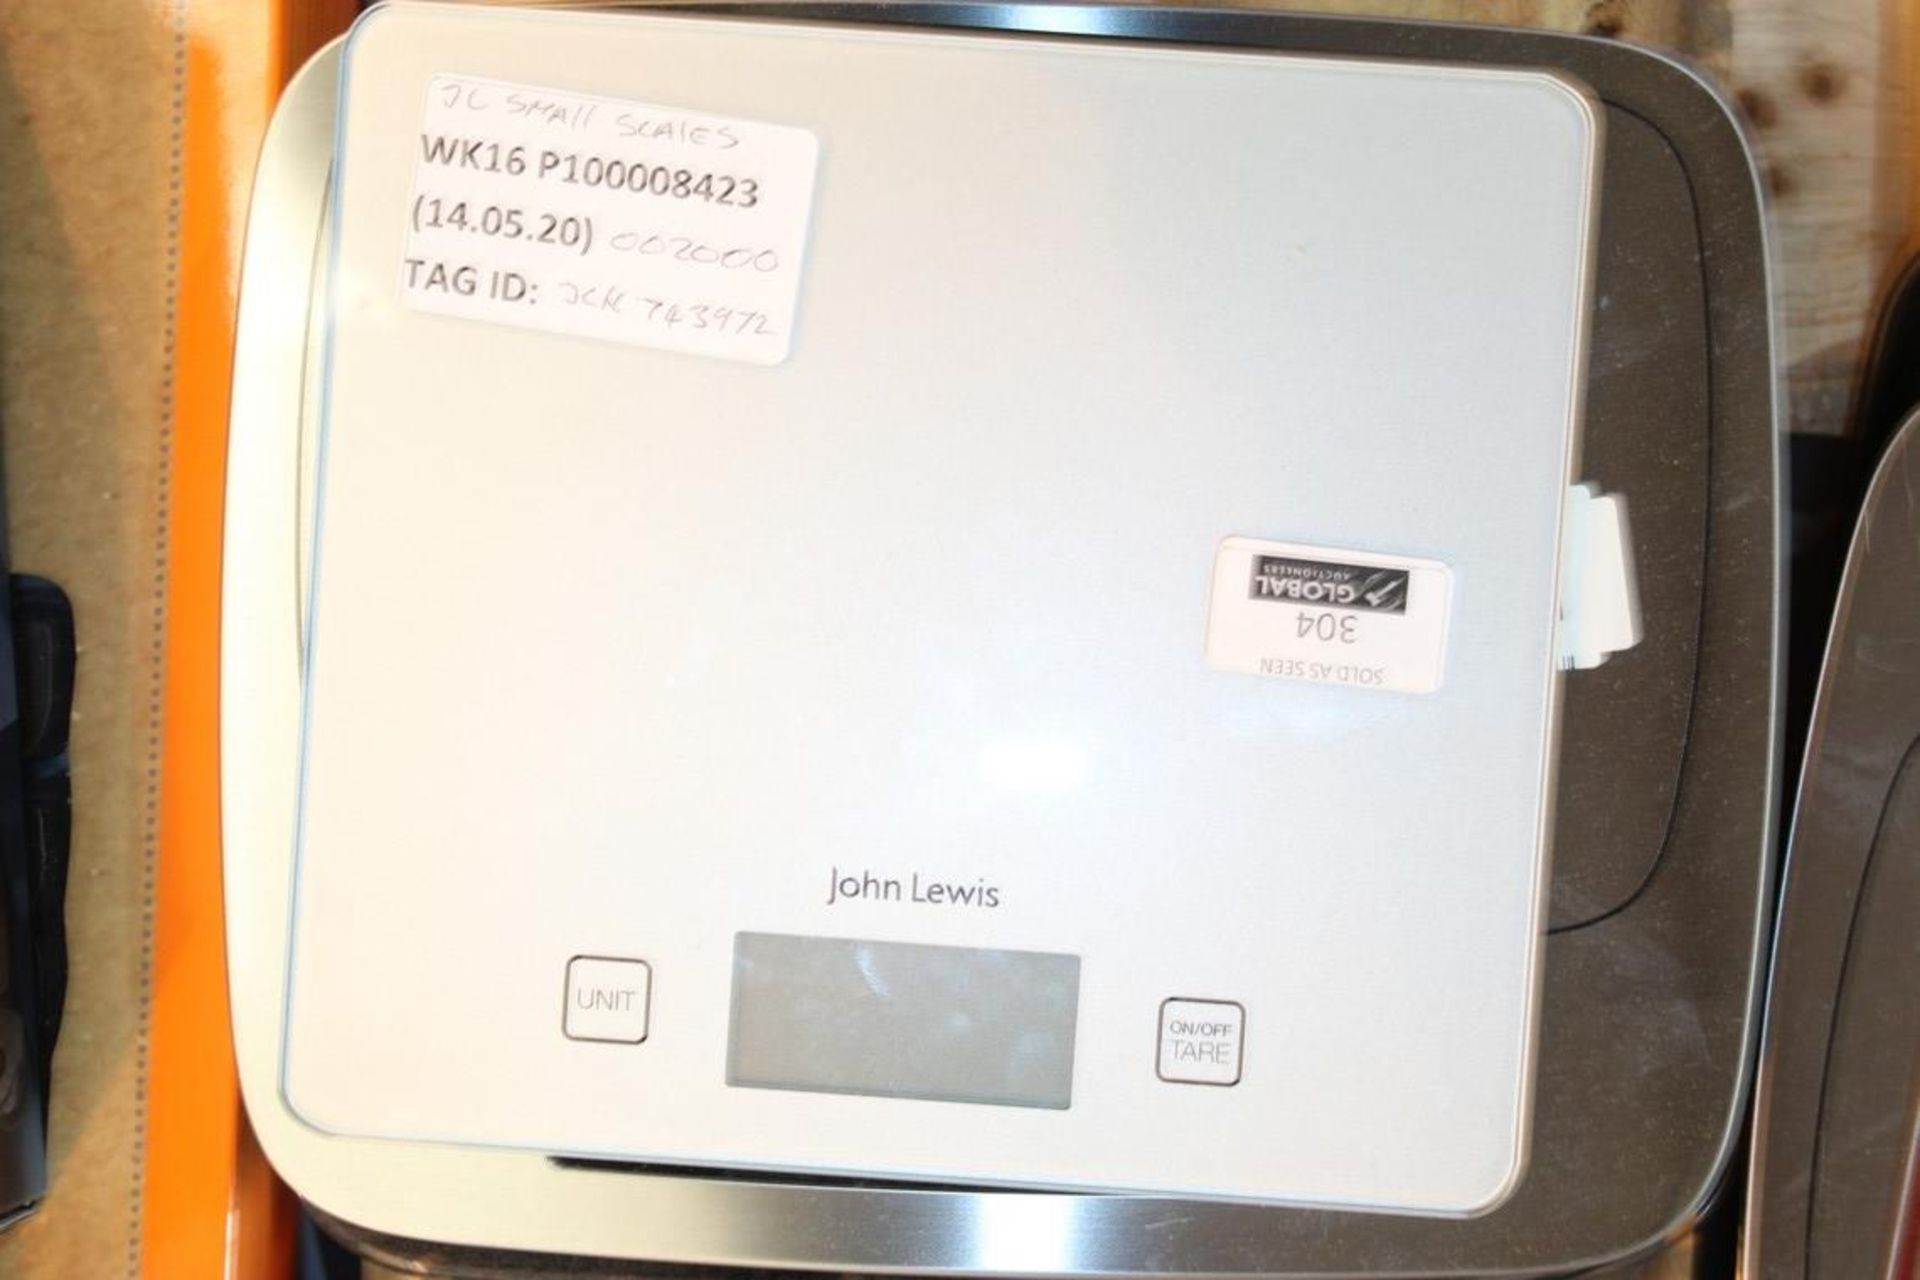 Lot 304 - Pairs Of John Lewis And Partners Digital Weighing Scales To In RRP £10-£20 Each (742398) (744573) (